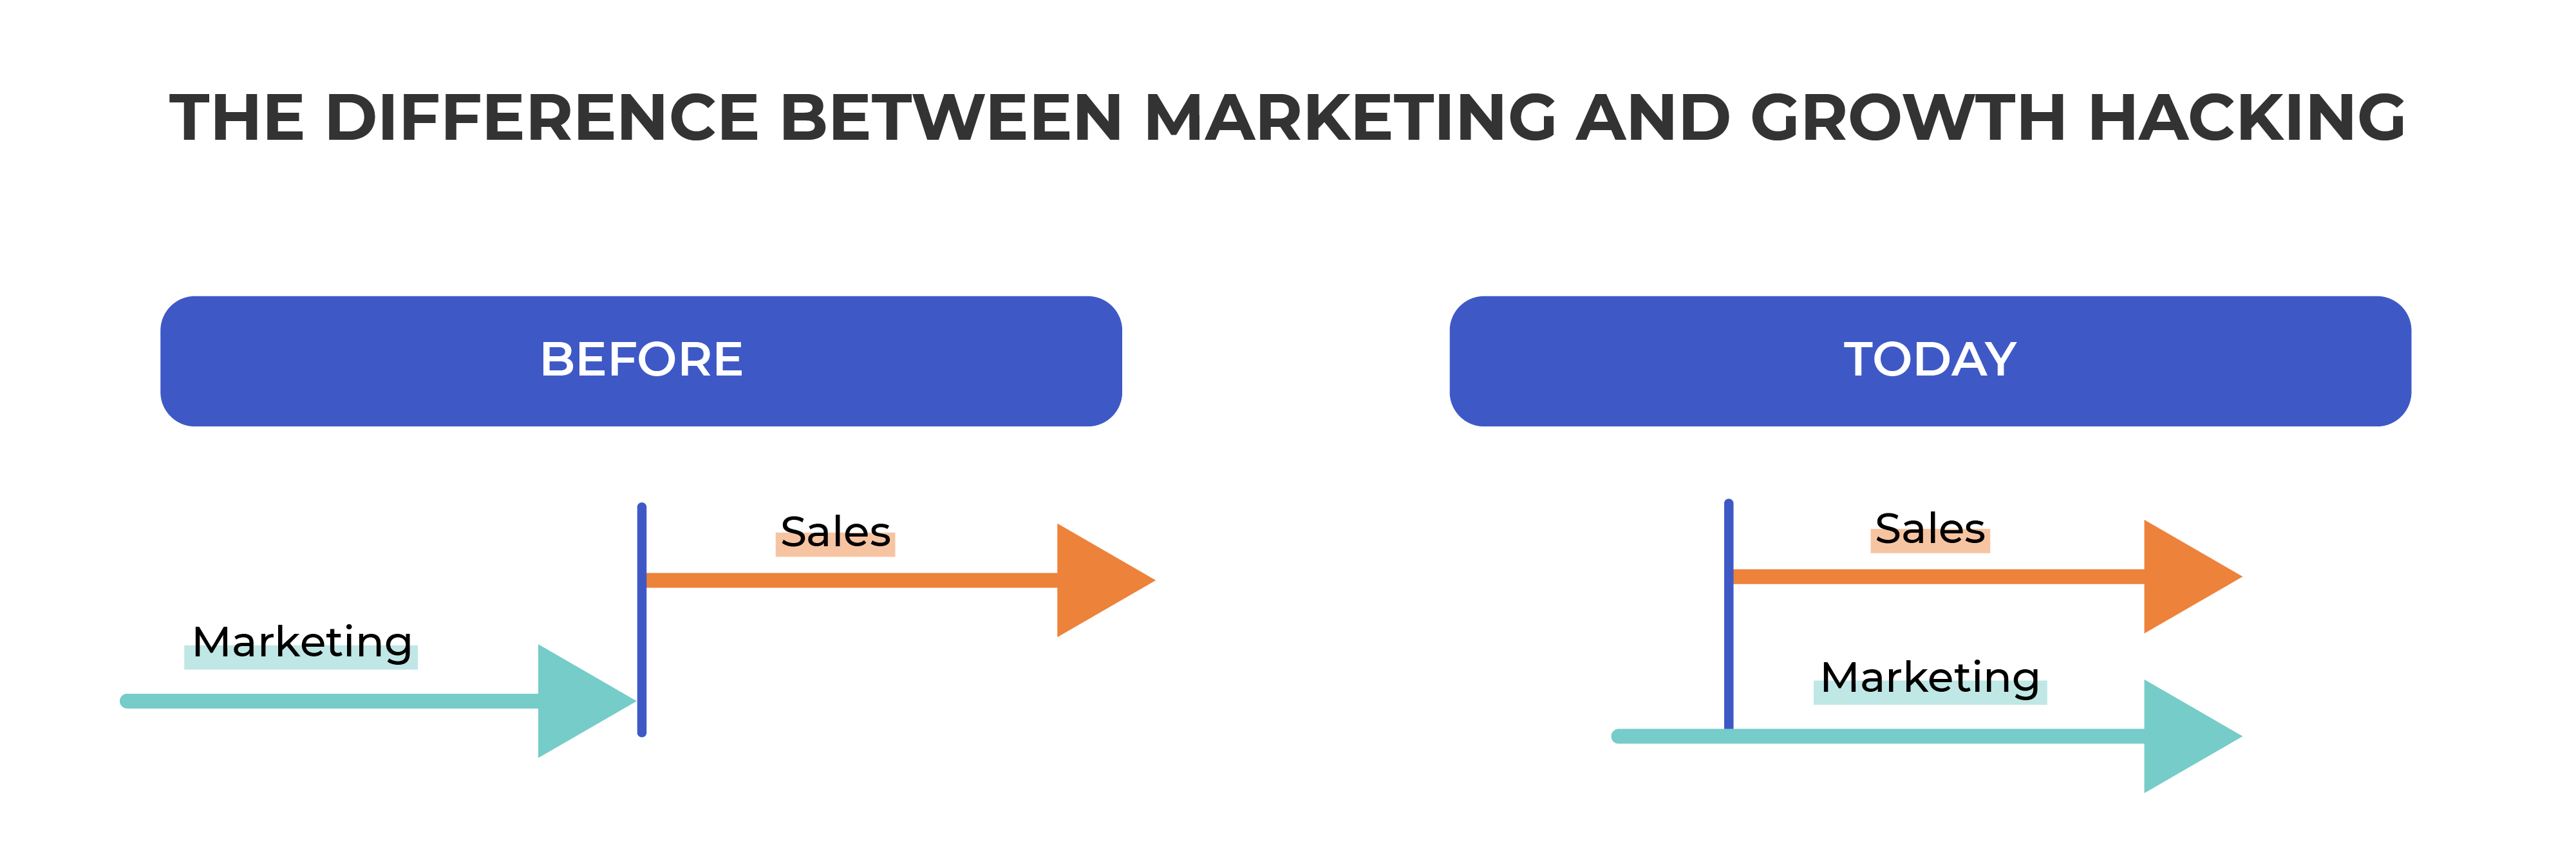 The evolution of funnel marketing: before and after visual. Marketing used to take place before sales and now they are both at the same time.